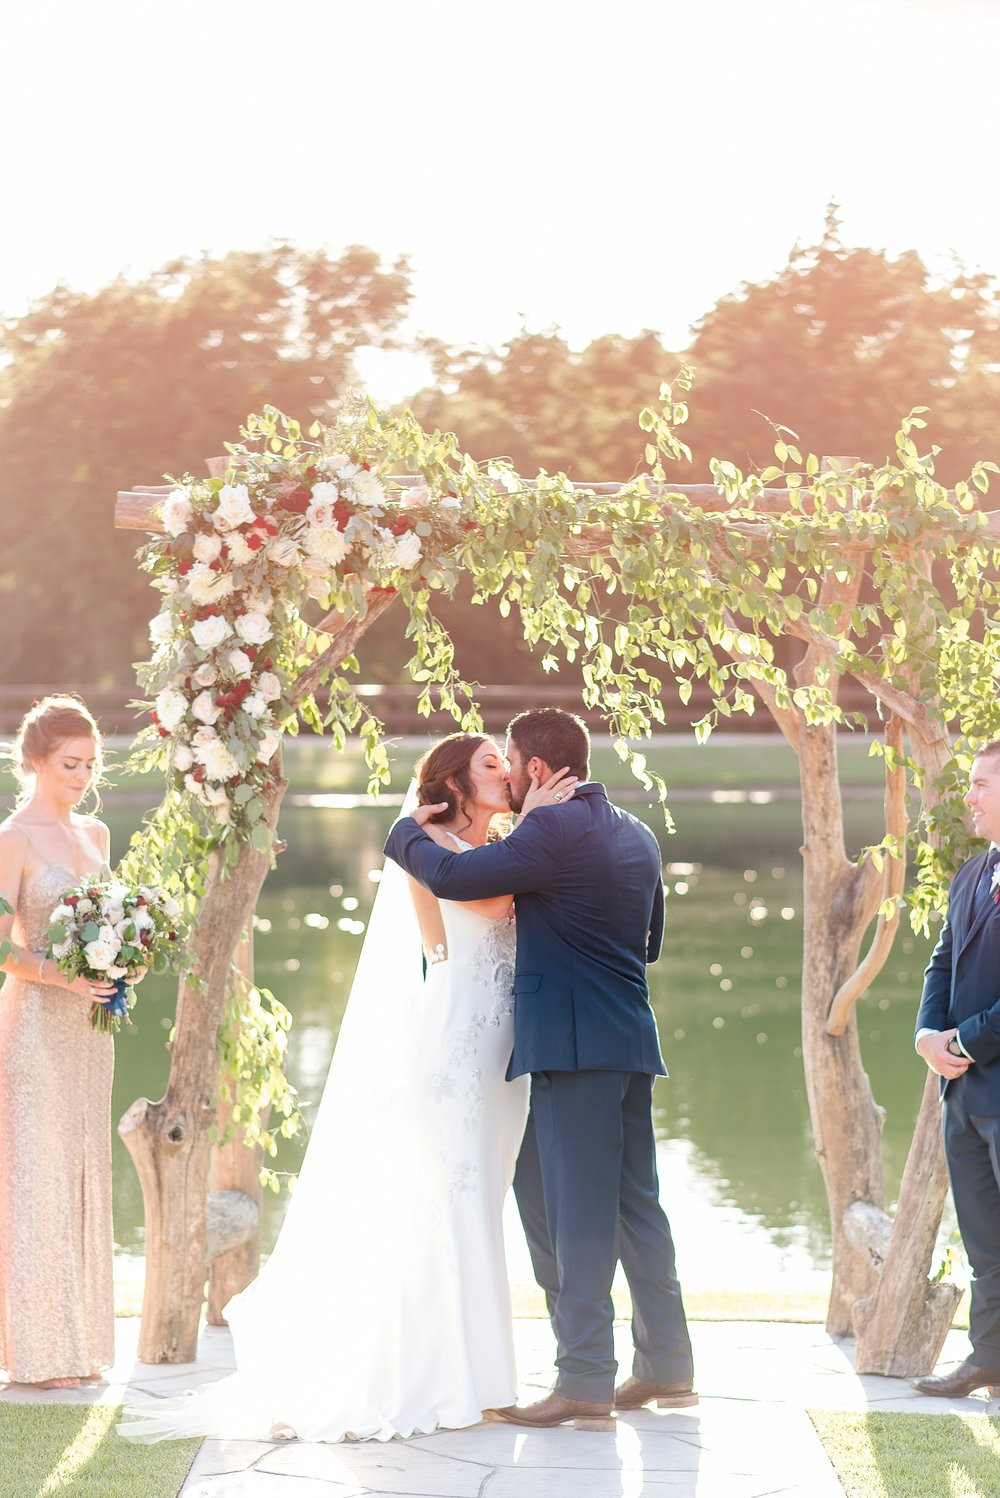 The newlyweds share a kiss in the sunshine beaming through the flowing greenery and blooms.